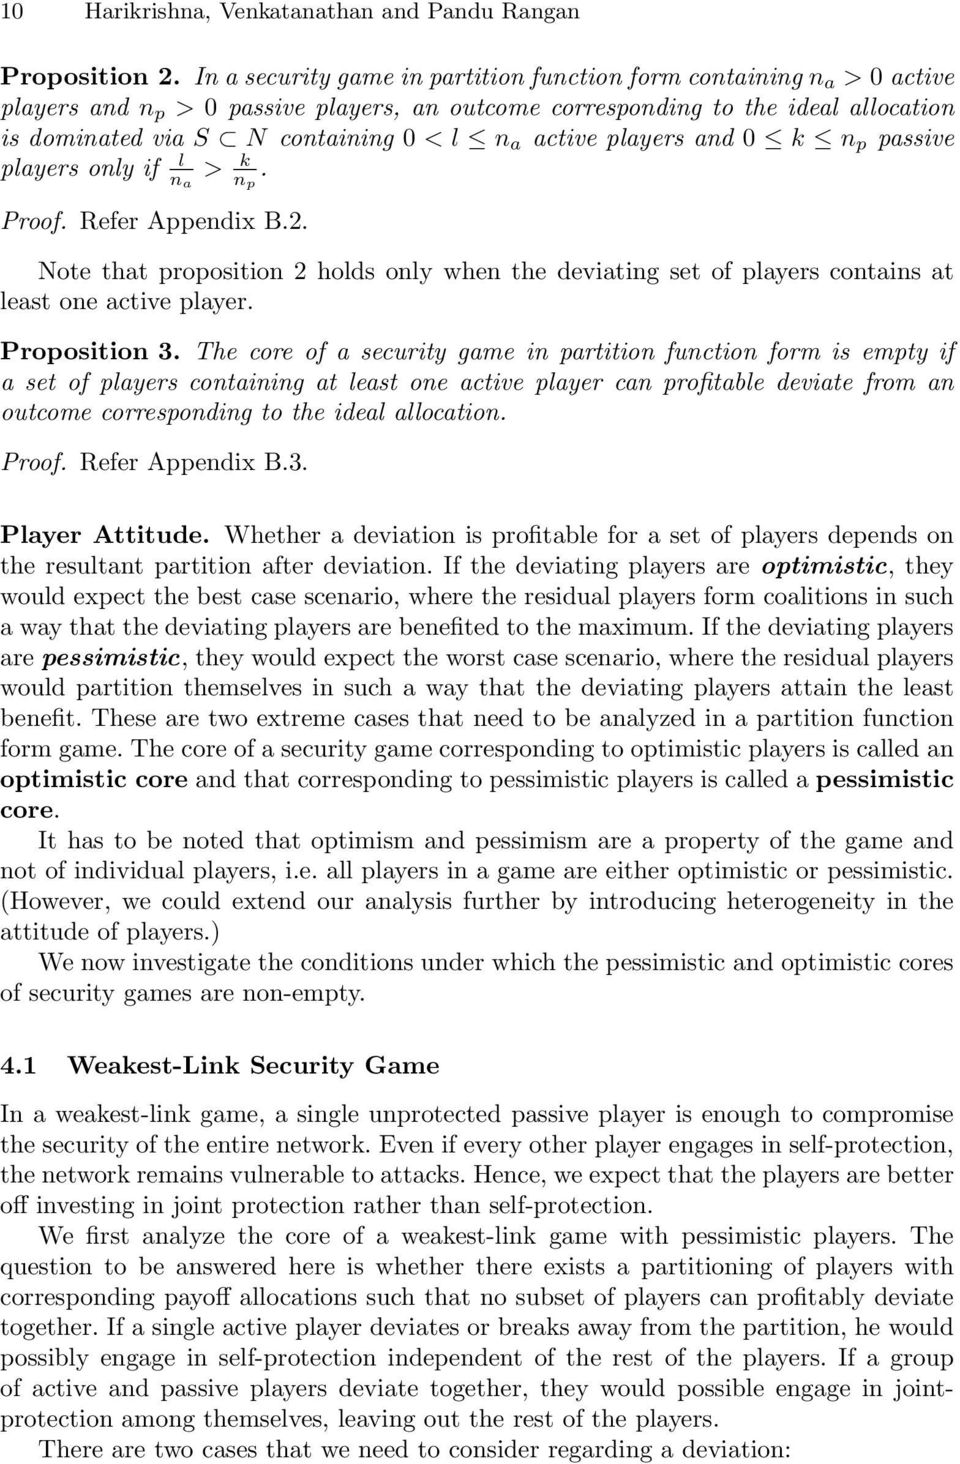 players and 0 k n p passive l players only if > k n p. Proof. Refer Appendix B.2. Note that proposition 2 holds only when the deviating set of players contains at least one active player.